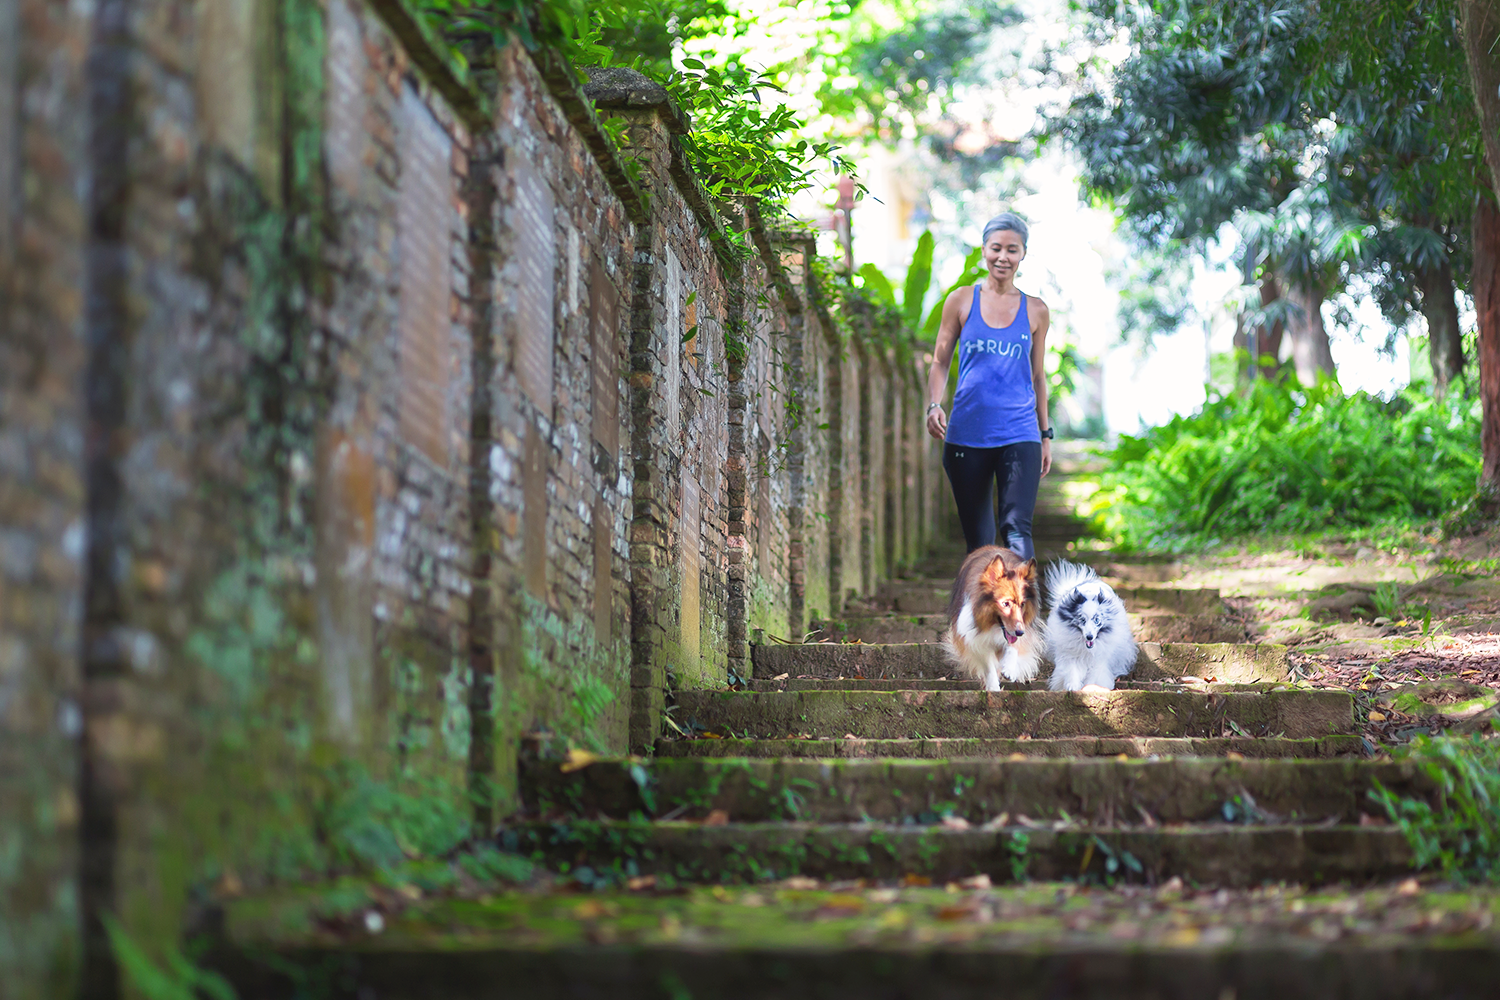 ashlogue_ashleeyleong_mariechoo_sosd_dogs_singapore fort canning_fort canning_marie choo the straits times_marie choo channel news asia_fort canning arts centre